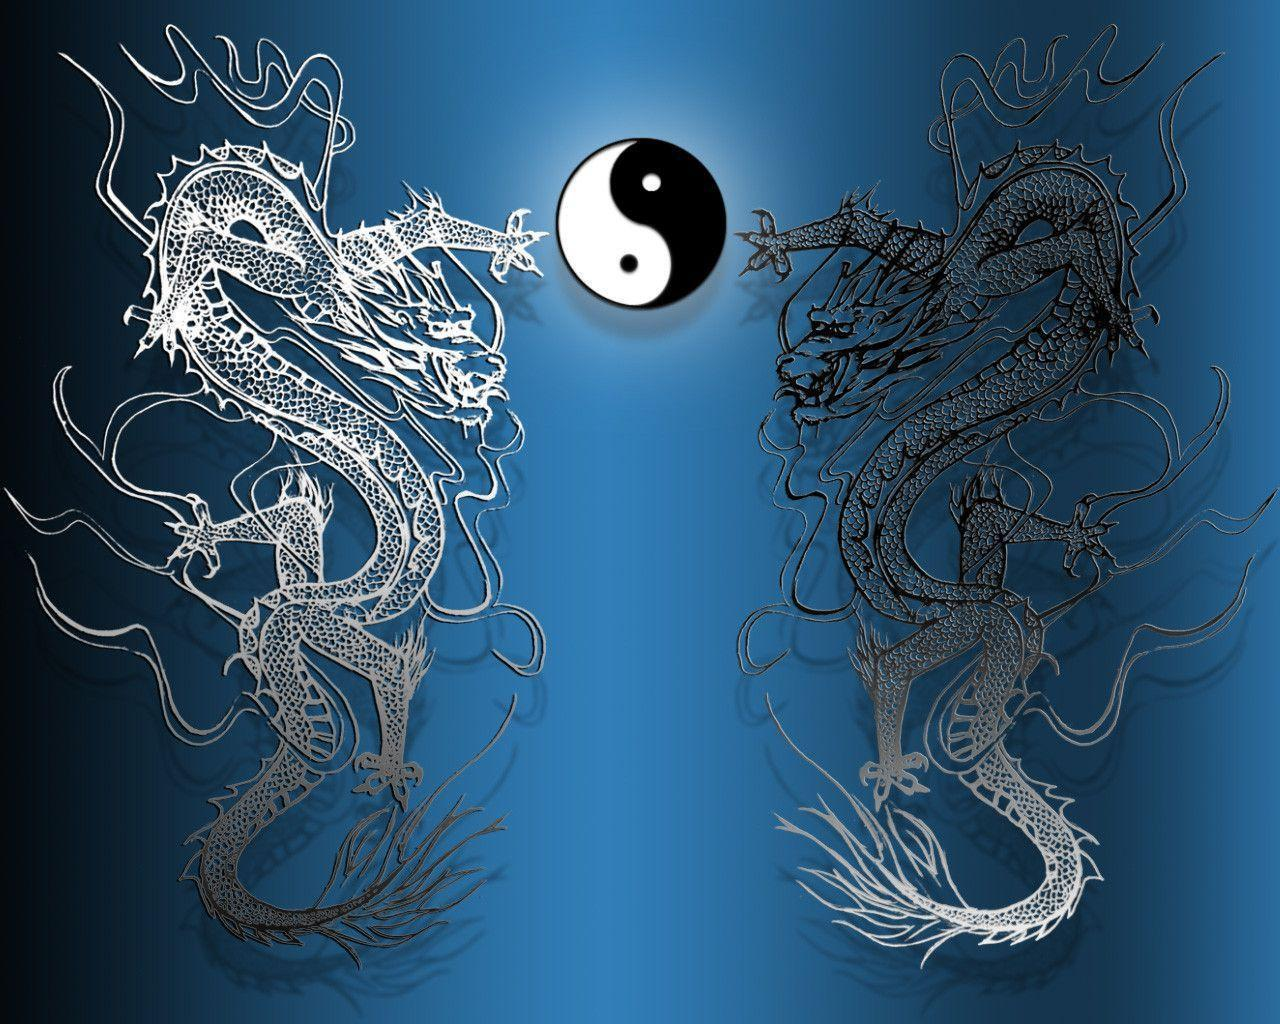 We may earn commission on some of the items you choose to buy. Yin Yang Wallpapers - Wallpaper Cave